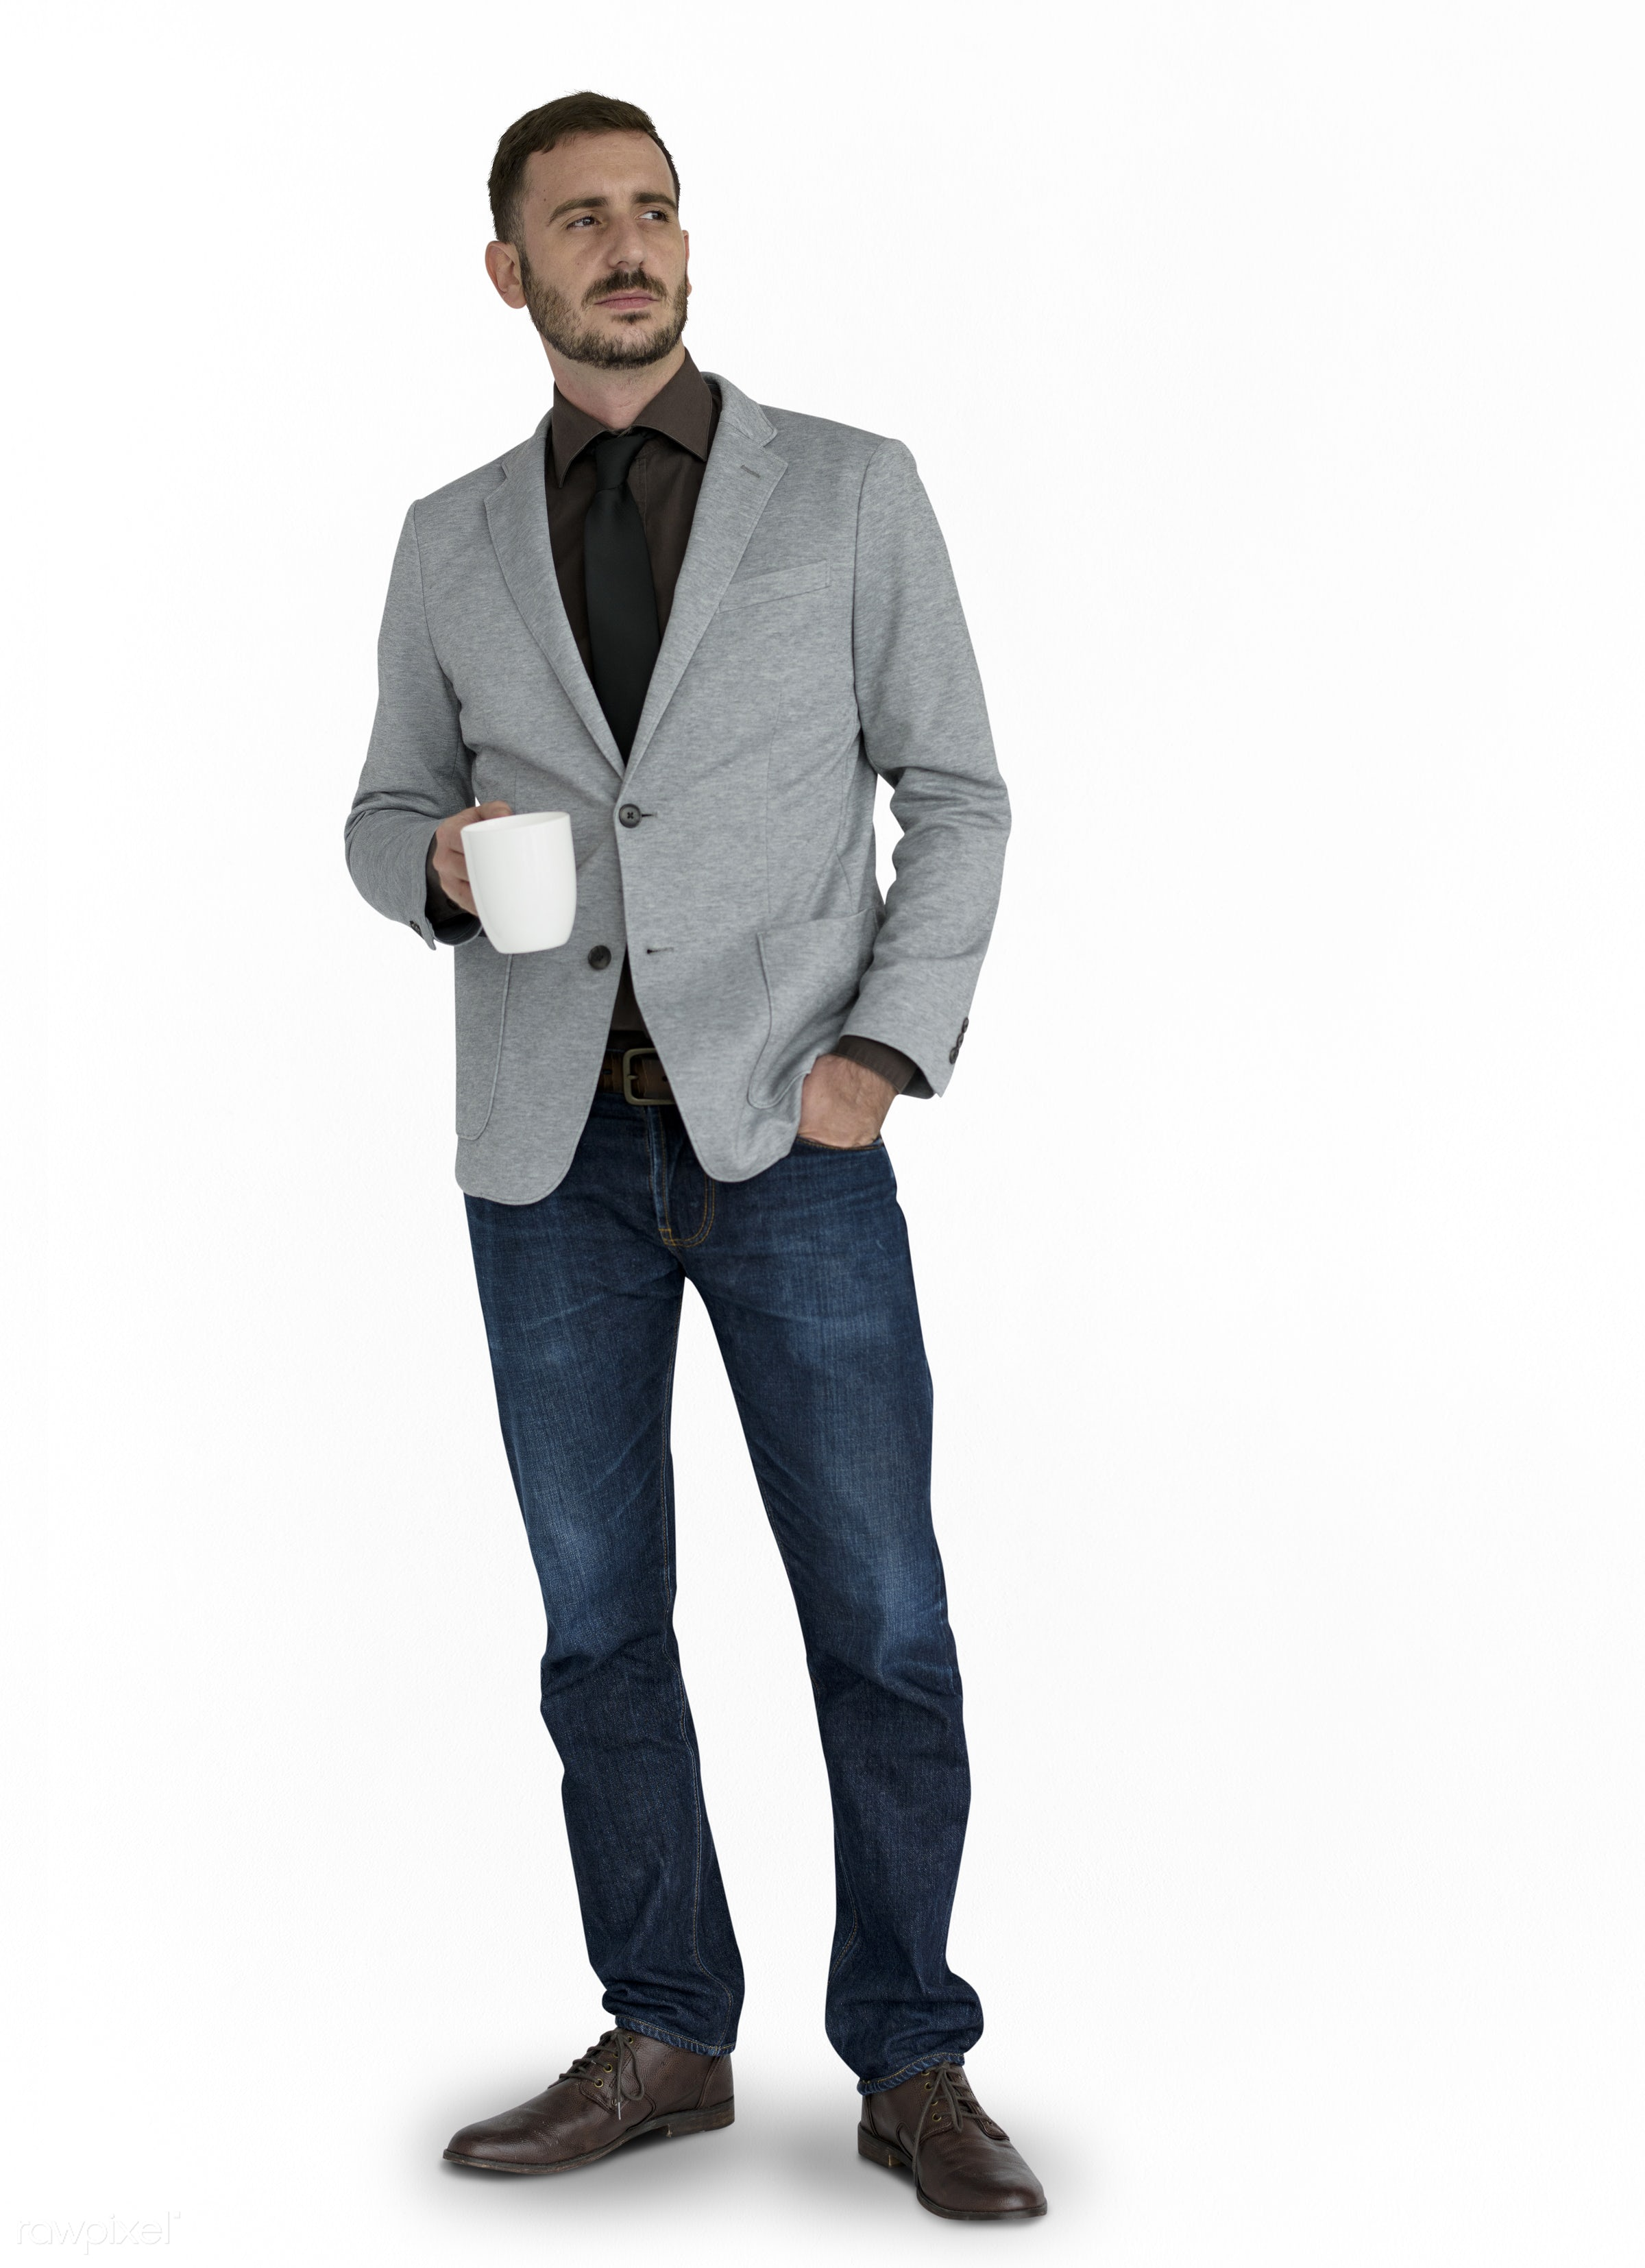 expression, studio, person, business wear, isolated on white, people, business, caucasian, pose, holding coffee, man, formal...